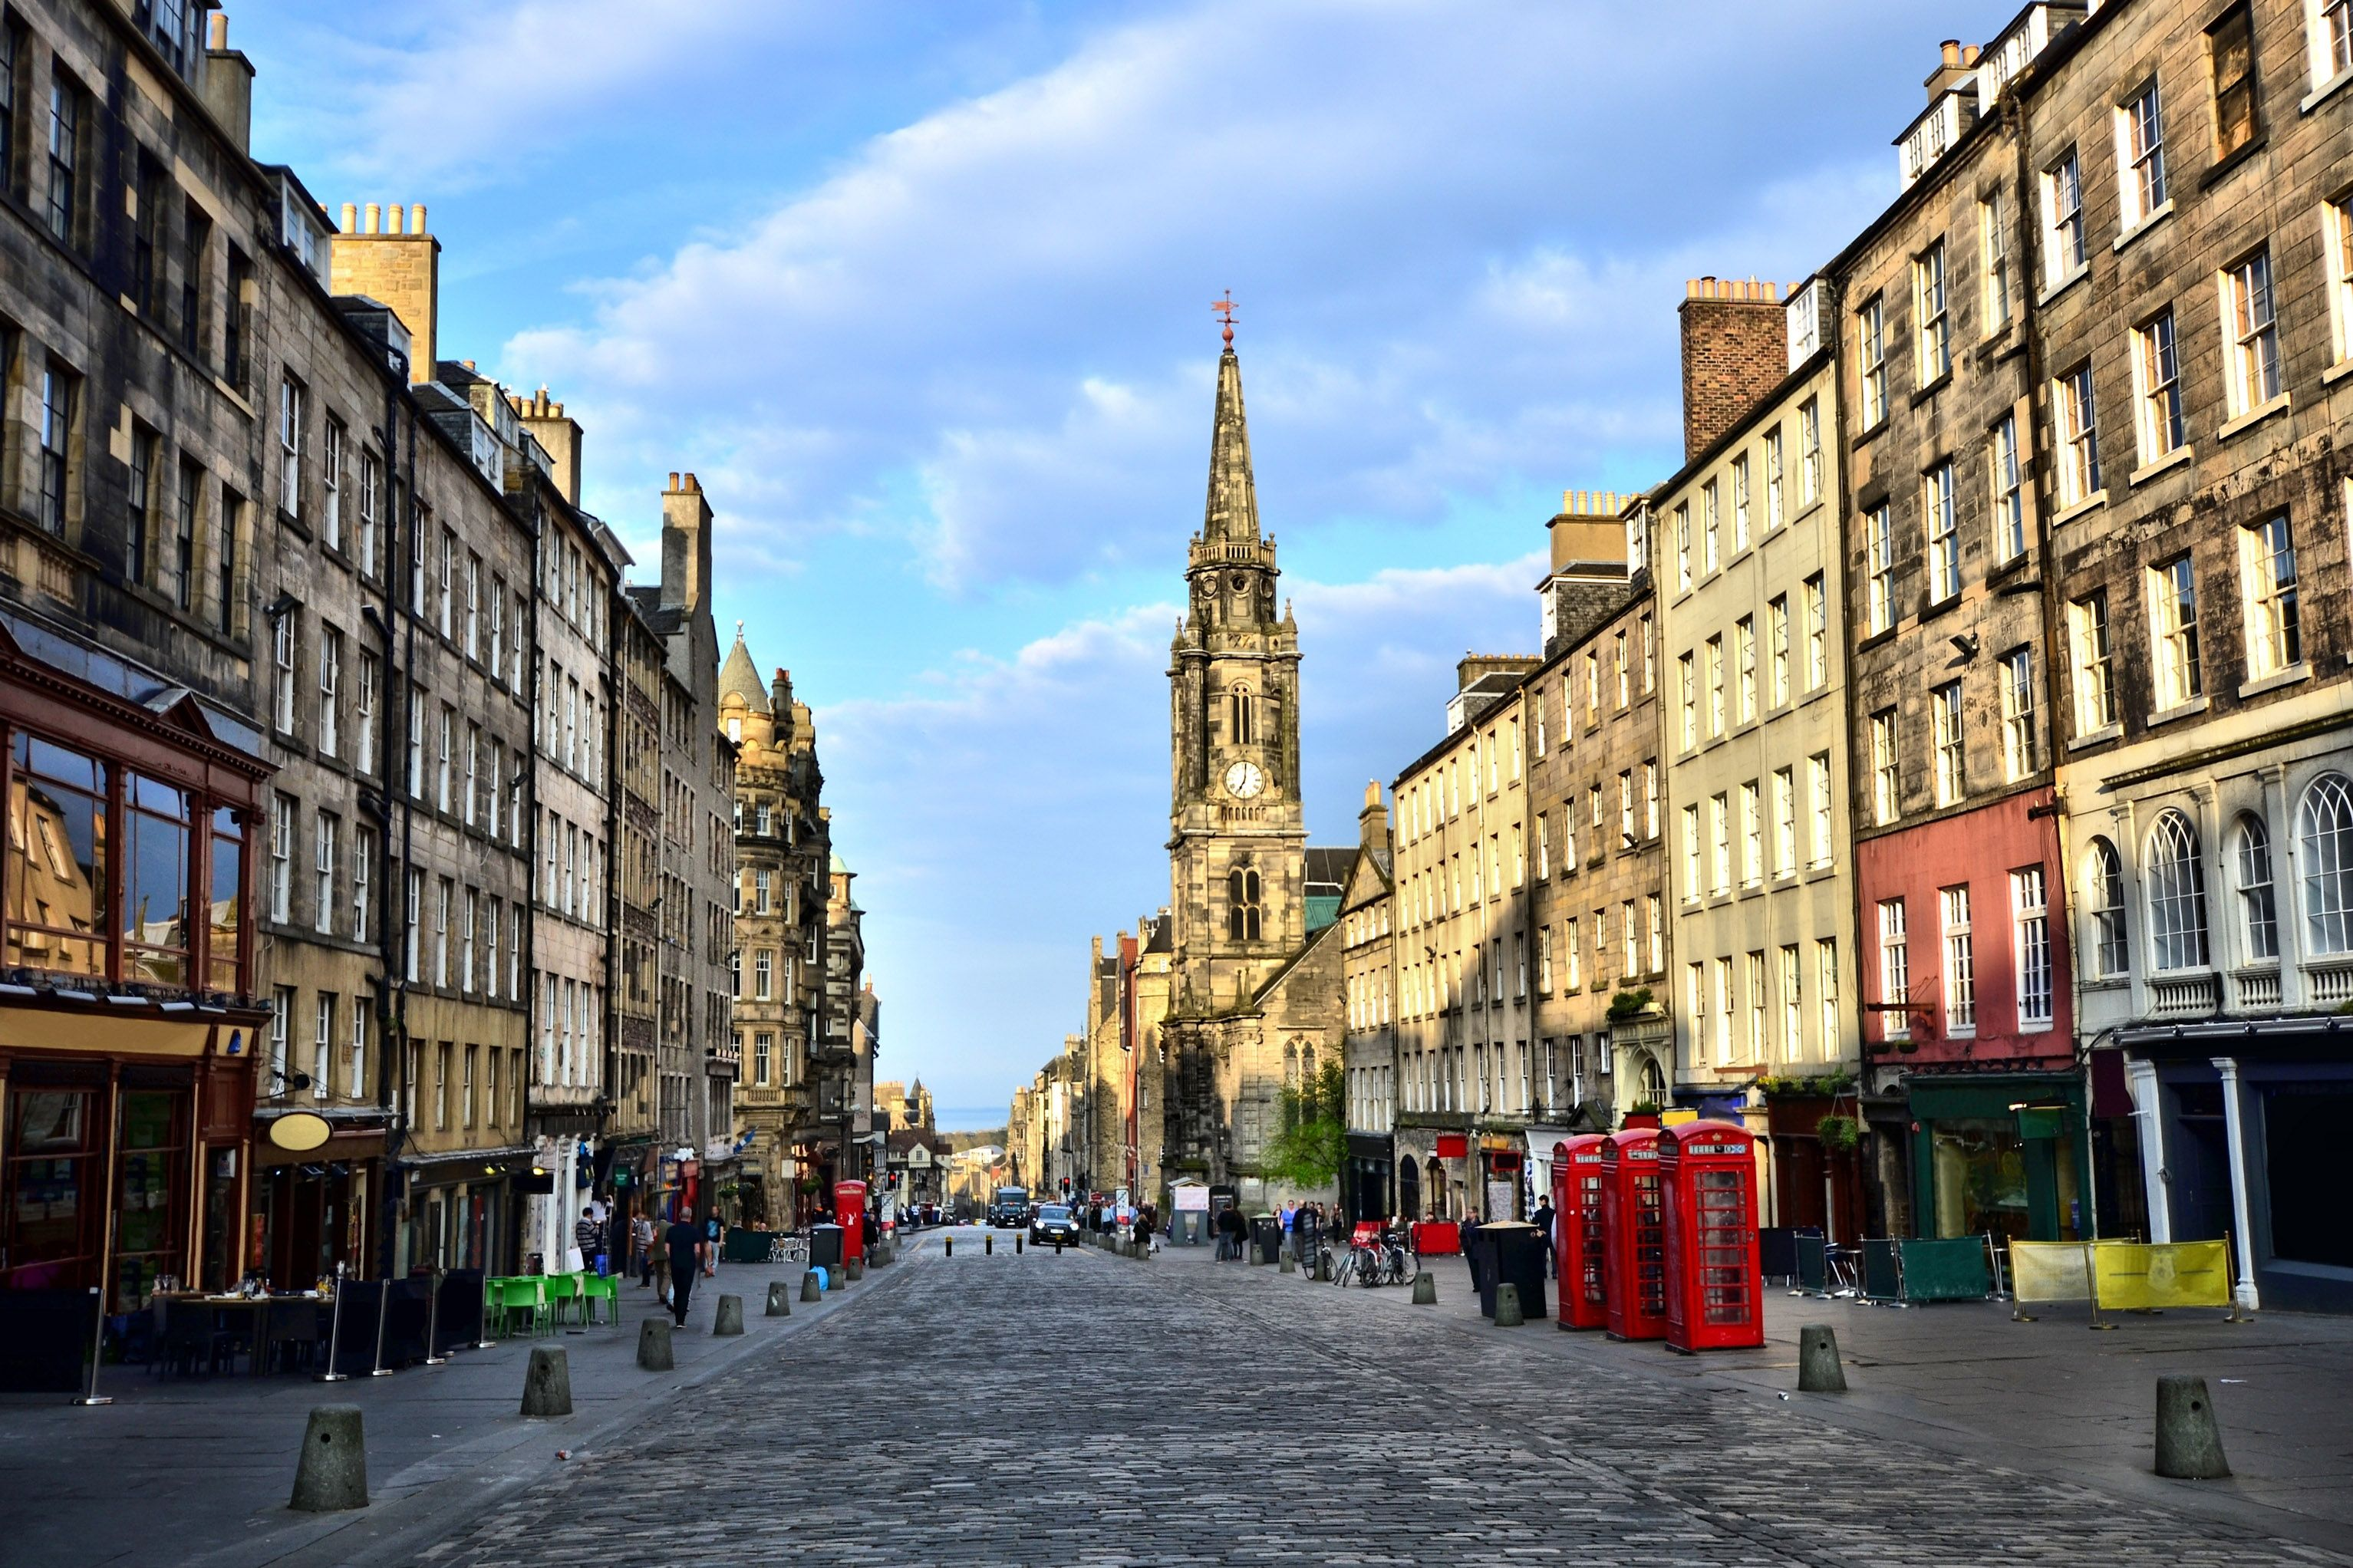 Edinburgh, Scotland's historic capital is one of the U.K.'s finest cities. Combining beautiful architecture, engrossing cultures and an extensive heritage, this Scottish delight is a must-visit destination. Cruise M1722.